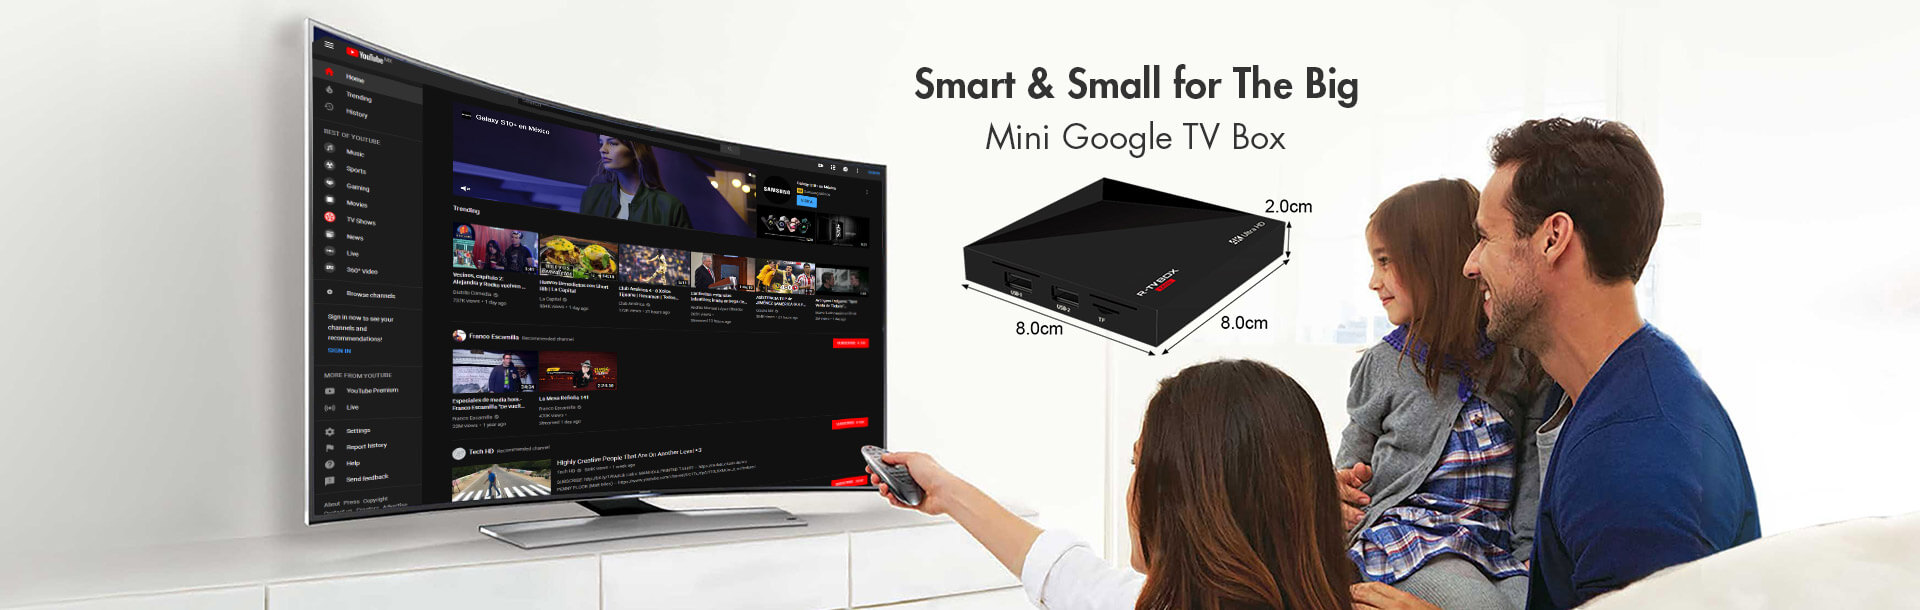 R-TV BOX MINI--RK3229